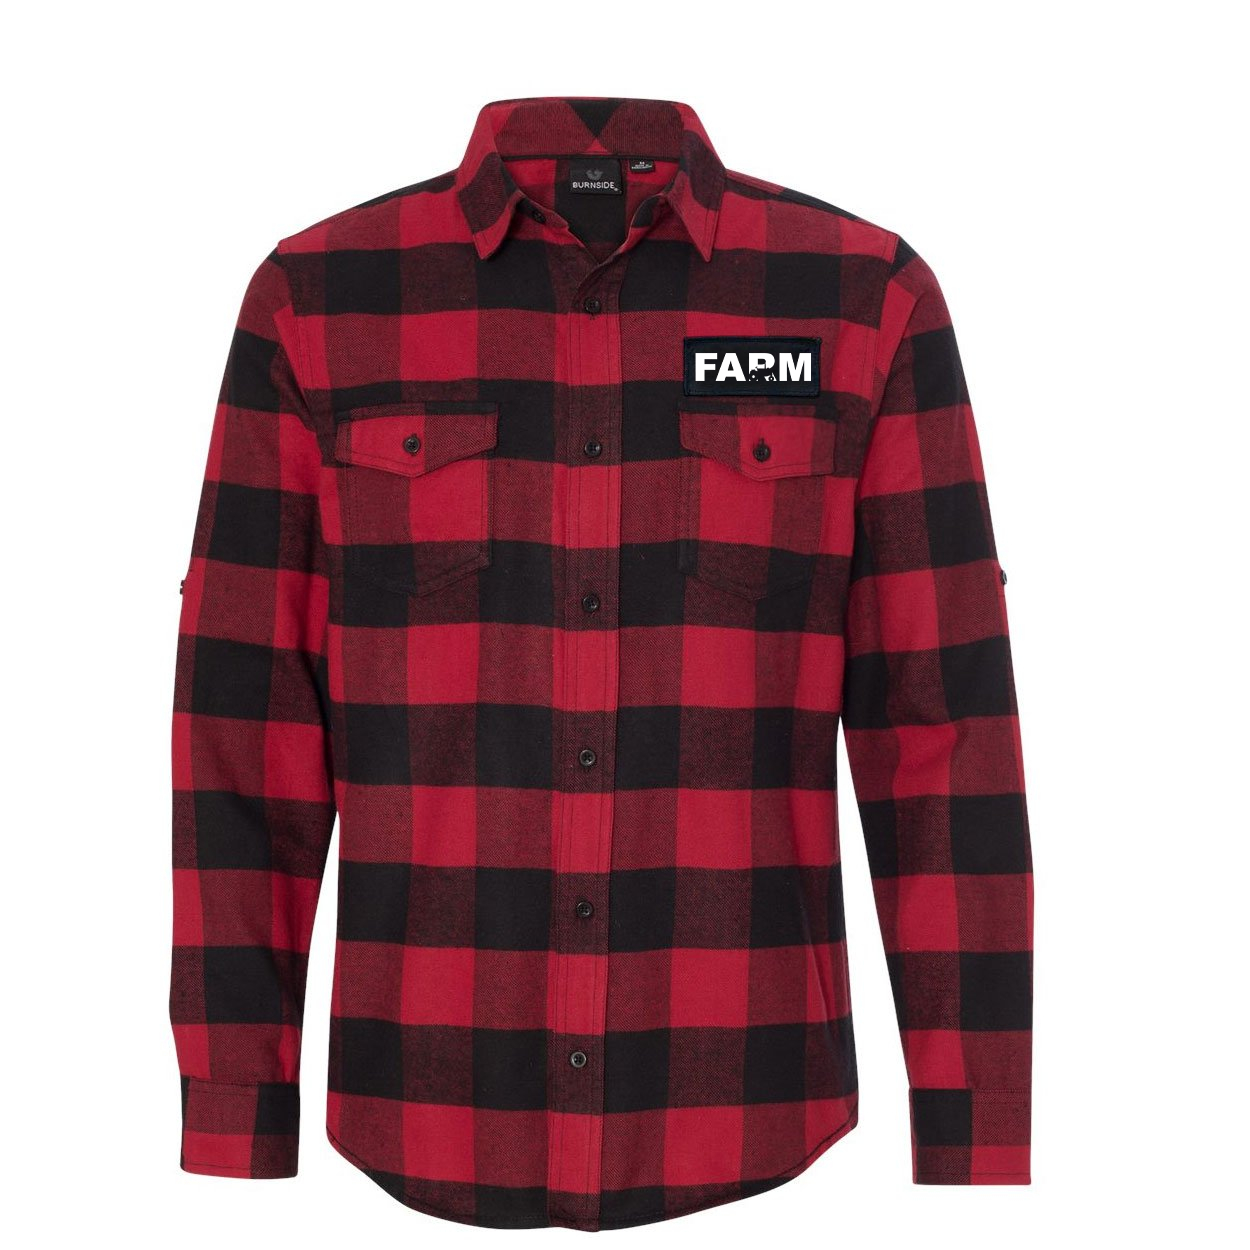 Farm Tractor Logo Classic Unisex Long Sleeve Woven Patch Flannel Shirt Red/Black Buffalo (White Logo)